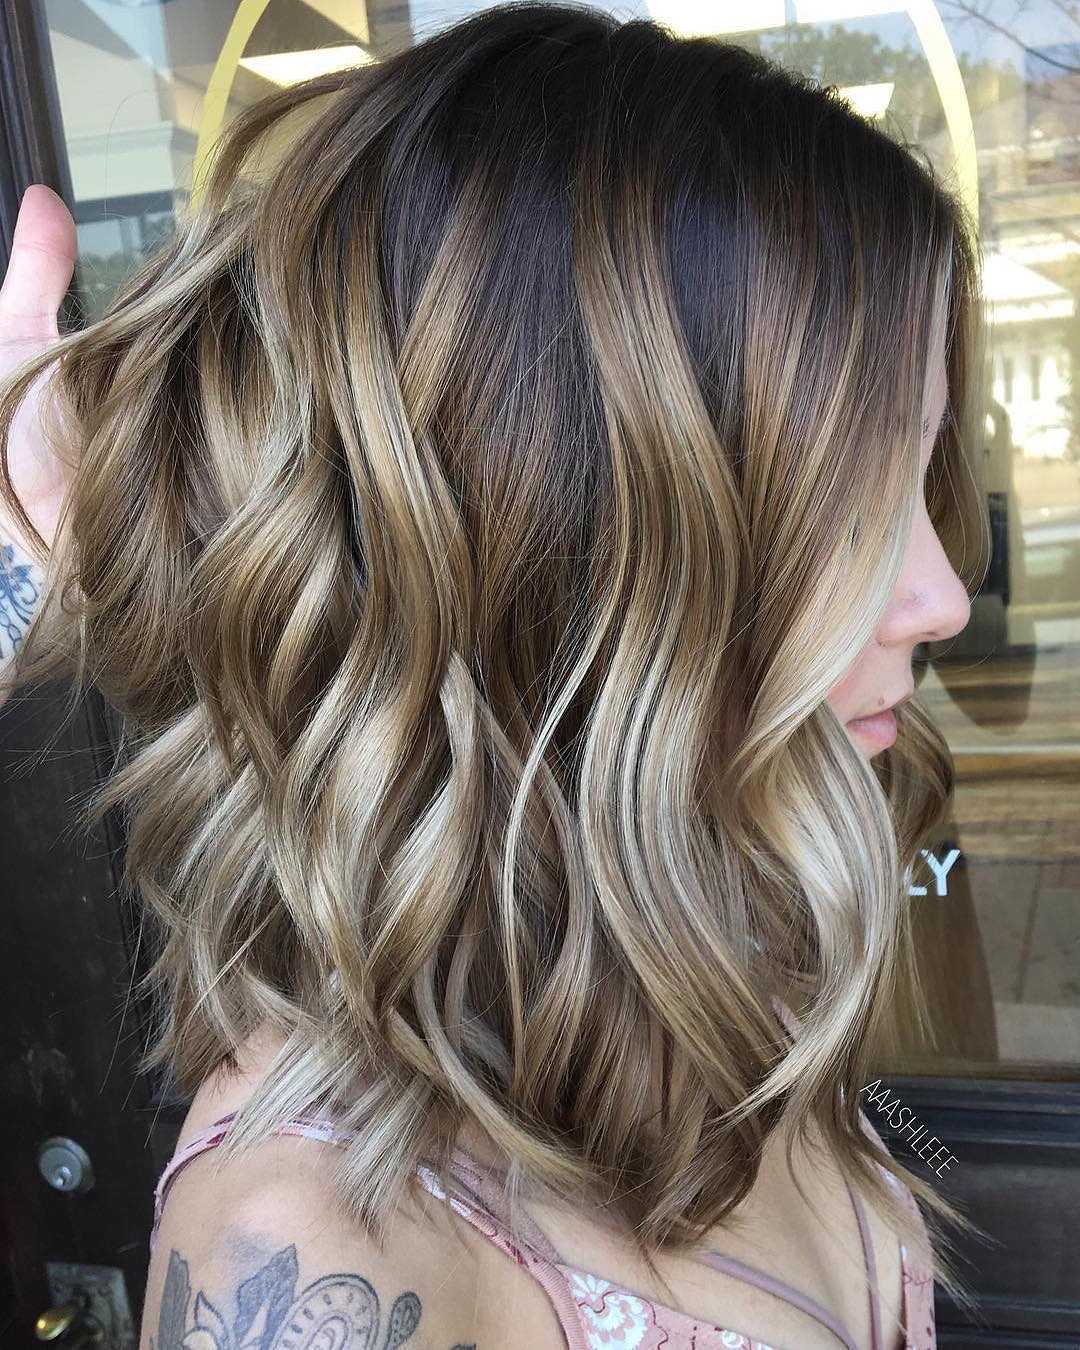 10 Ombre Balayage Hairstyles For Medium Length Hair, Hair Color 2019 In 2018 Balayage Hairstyles For Long Layers (View 10 of 20)